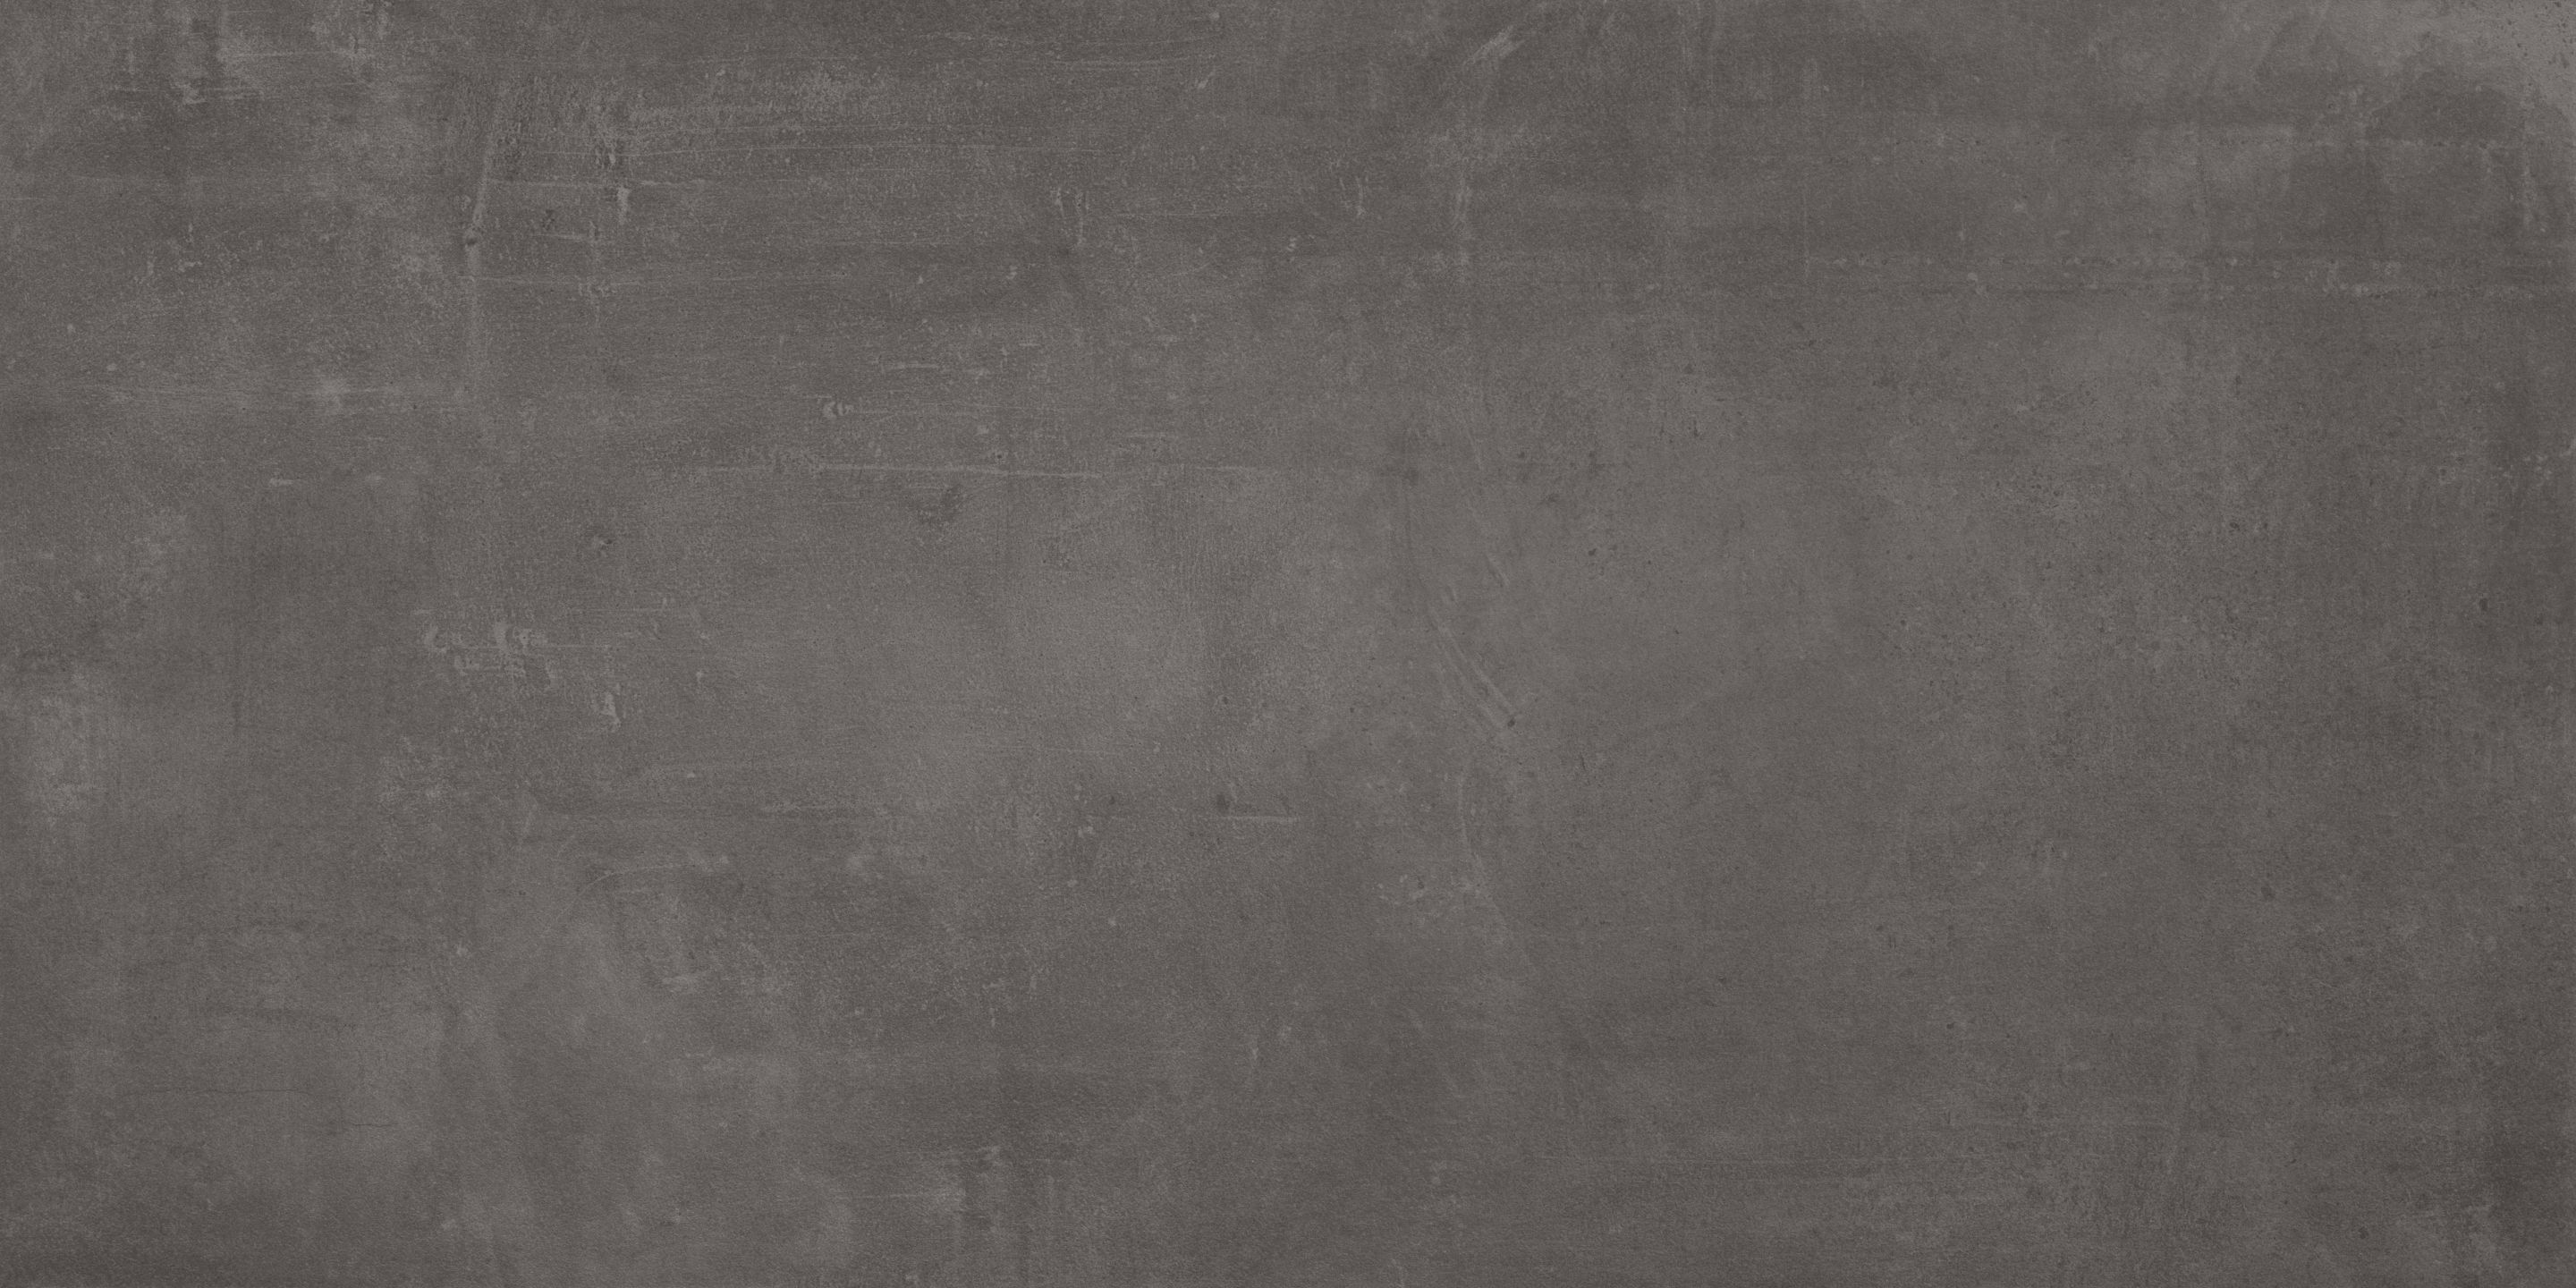 anthrazit Betonfliese 120x60 anthracite concrete effect tiles 120x60